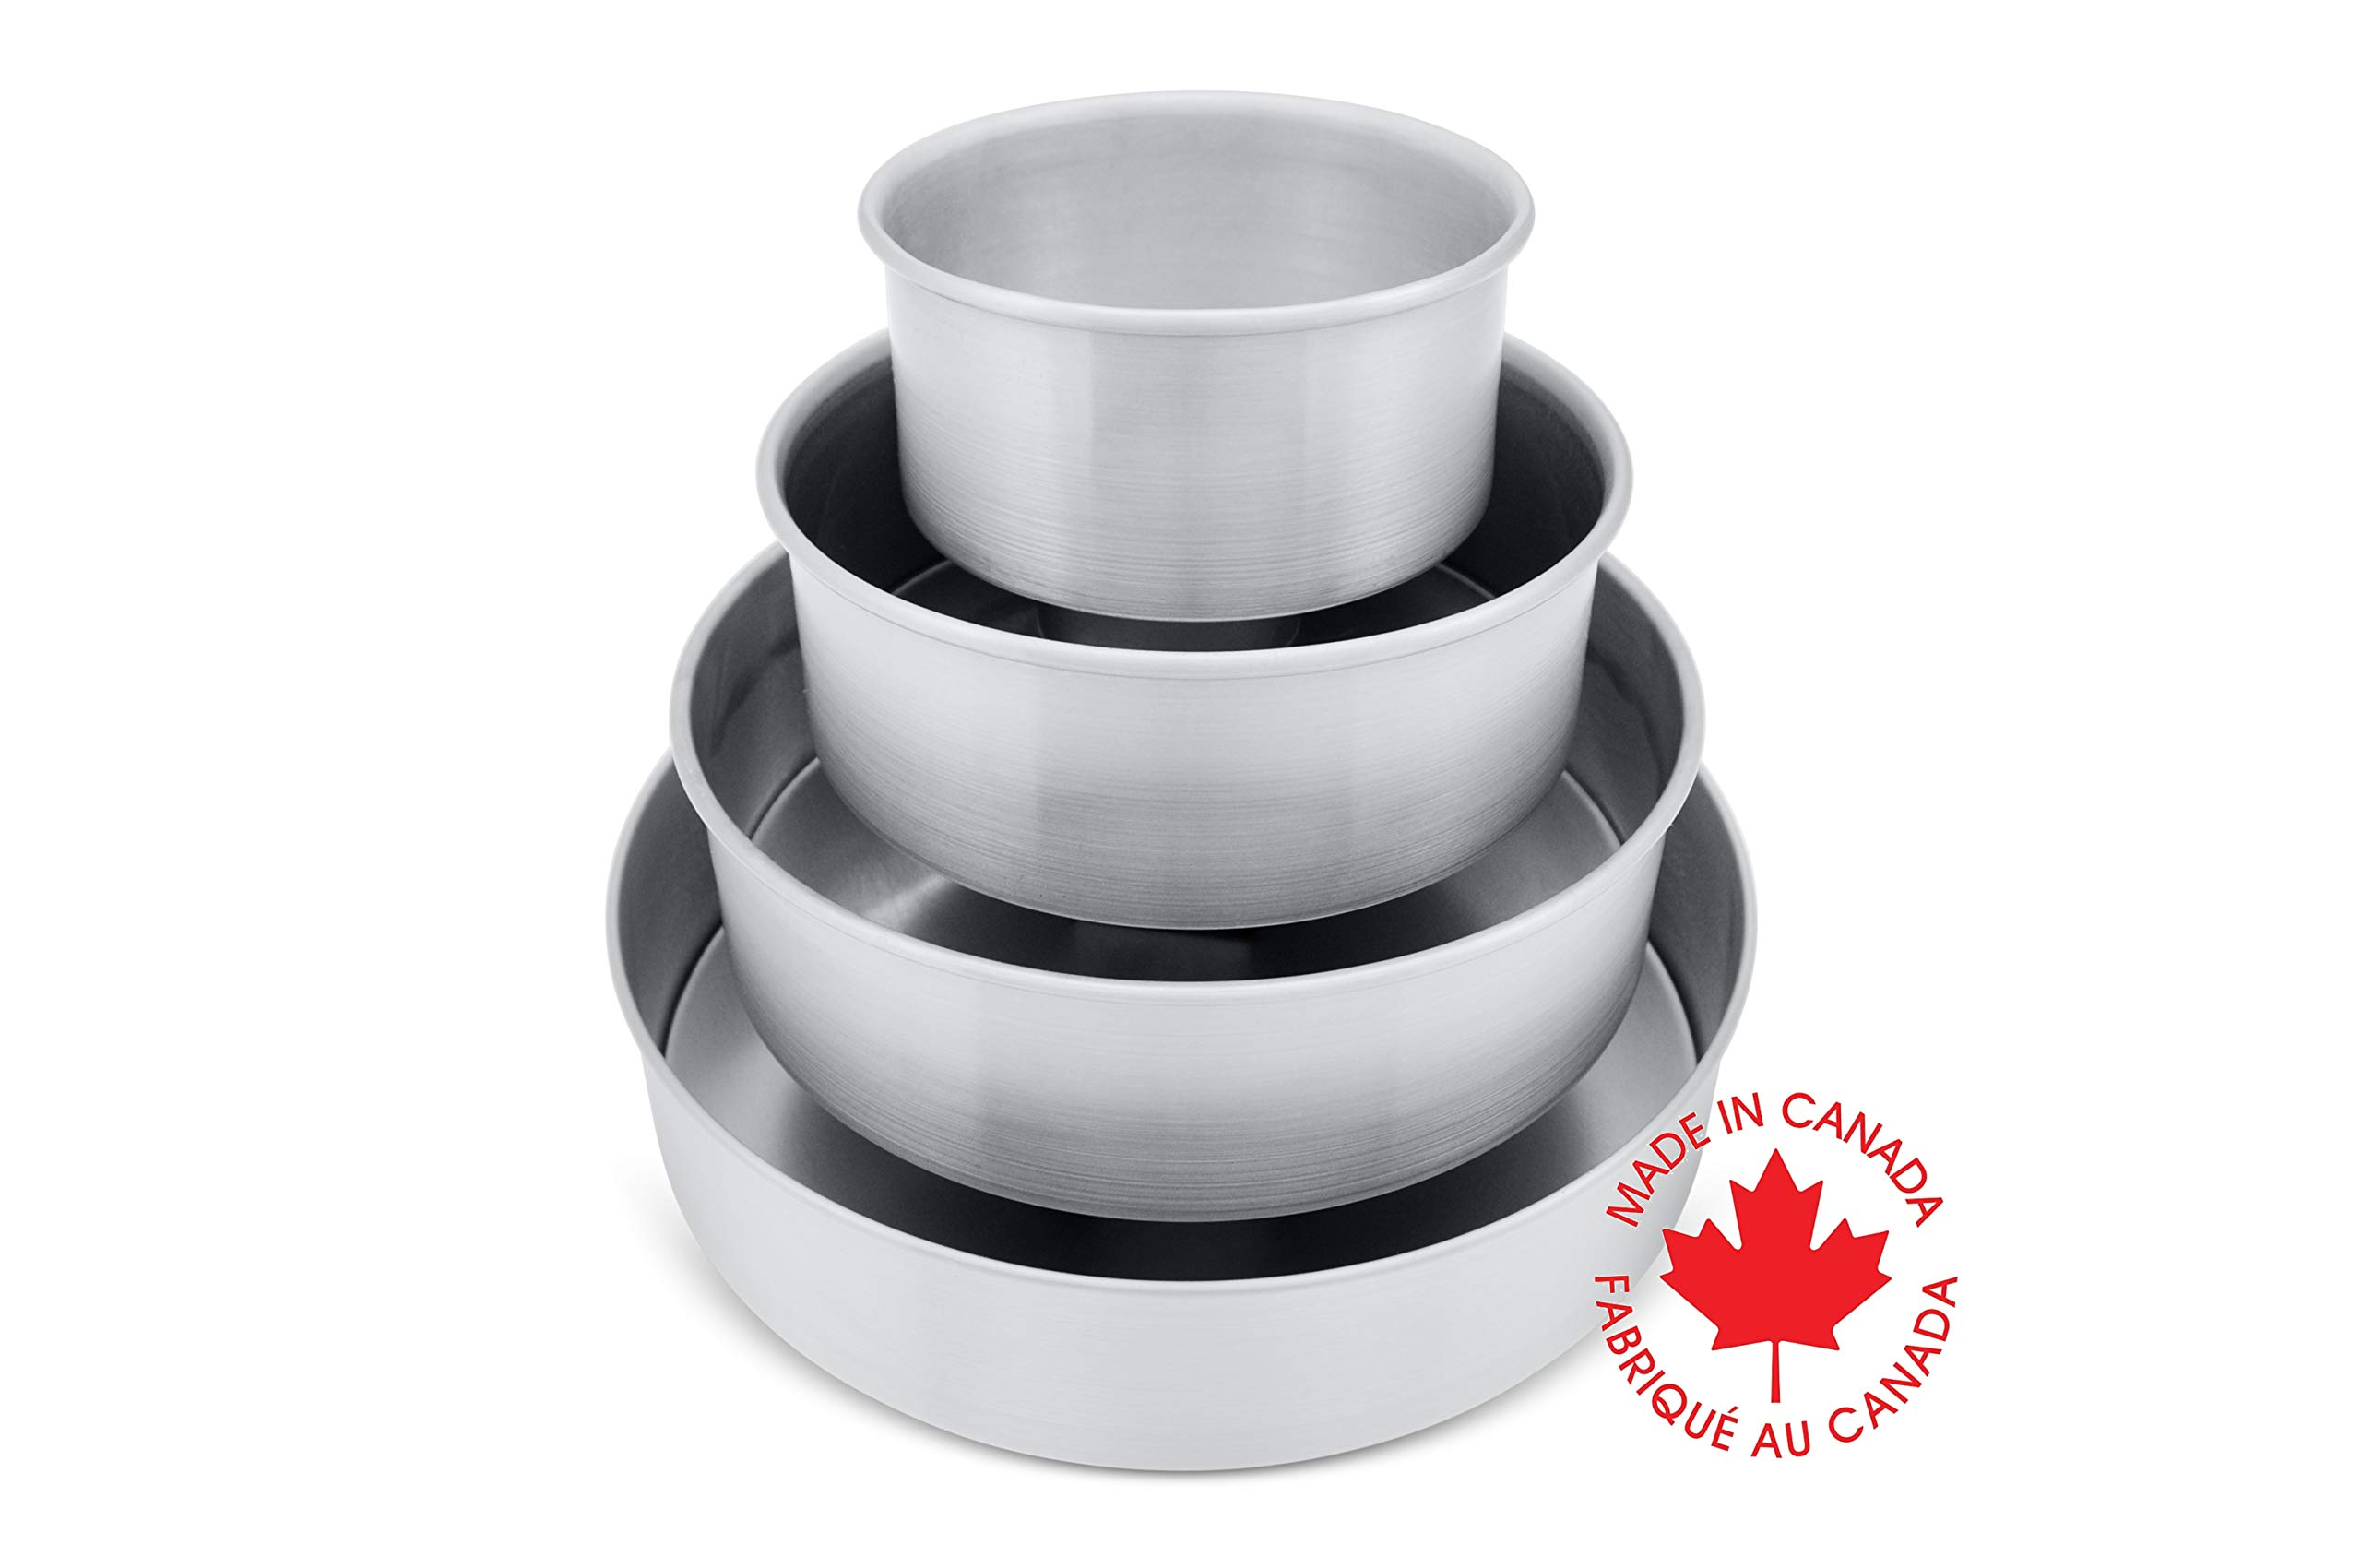 Crown 4-piece Round Cake Pan Set, 6, 8, 10, 12 inch, 2 inch deep, Professional Quality Cake Pans, Heavy Gauge, Extra Sturdy, Food Grade Aluminum, 6 inch Cake Pan included by Crown Cookware